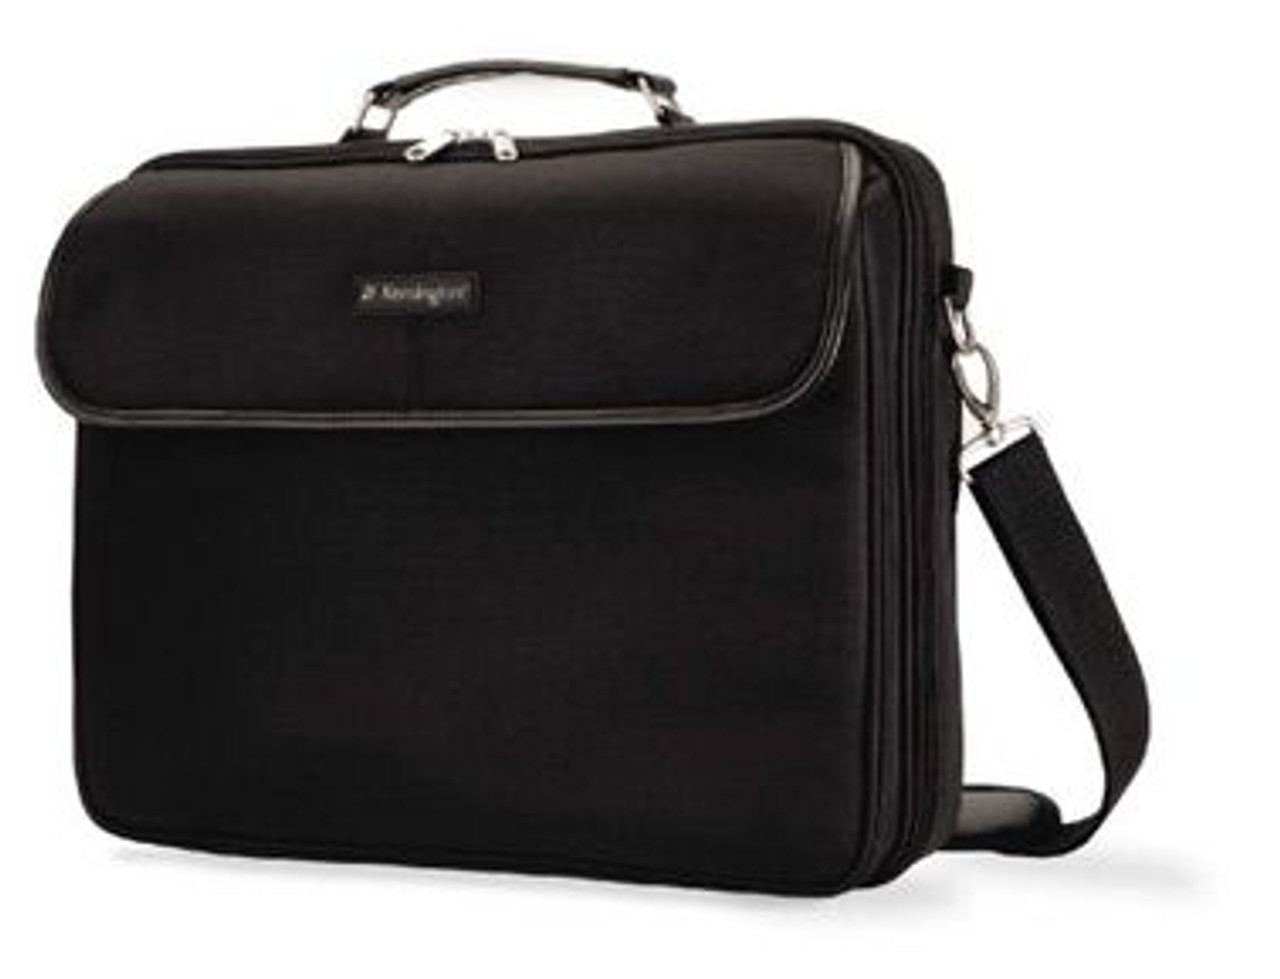 Image for Kensington SP30 Case for 15.4in Notebook Roller Attachment Strap CX Computer Superstore